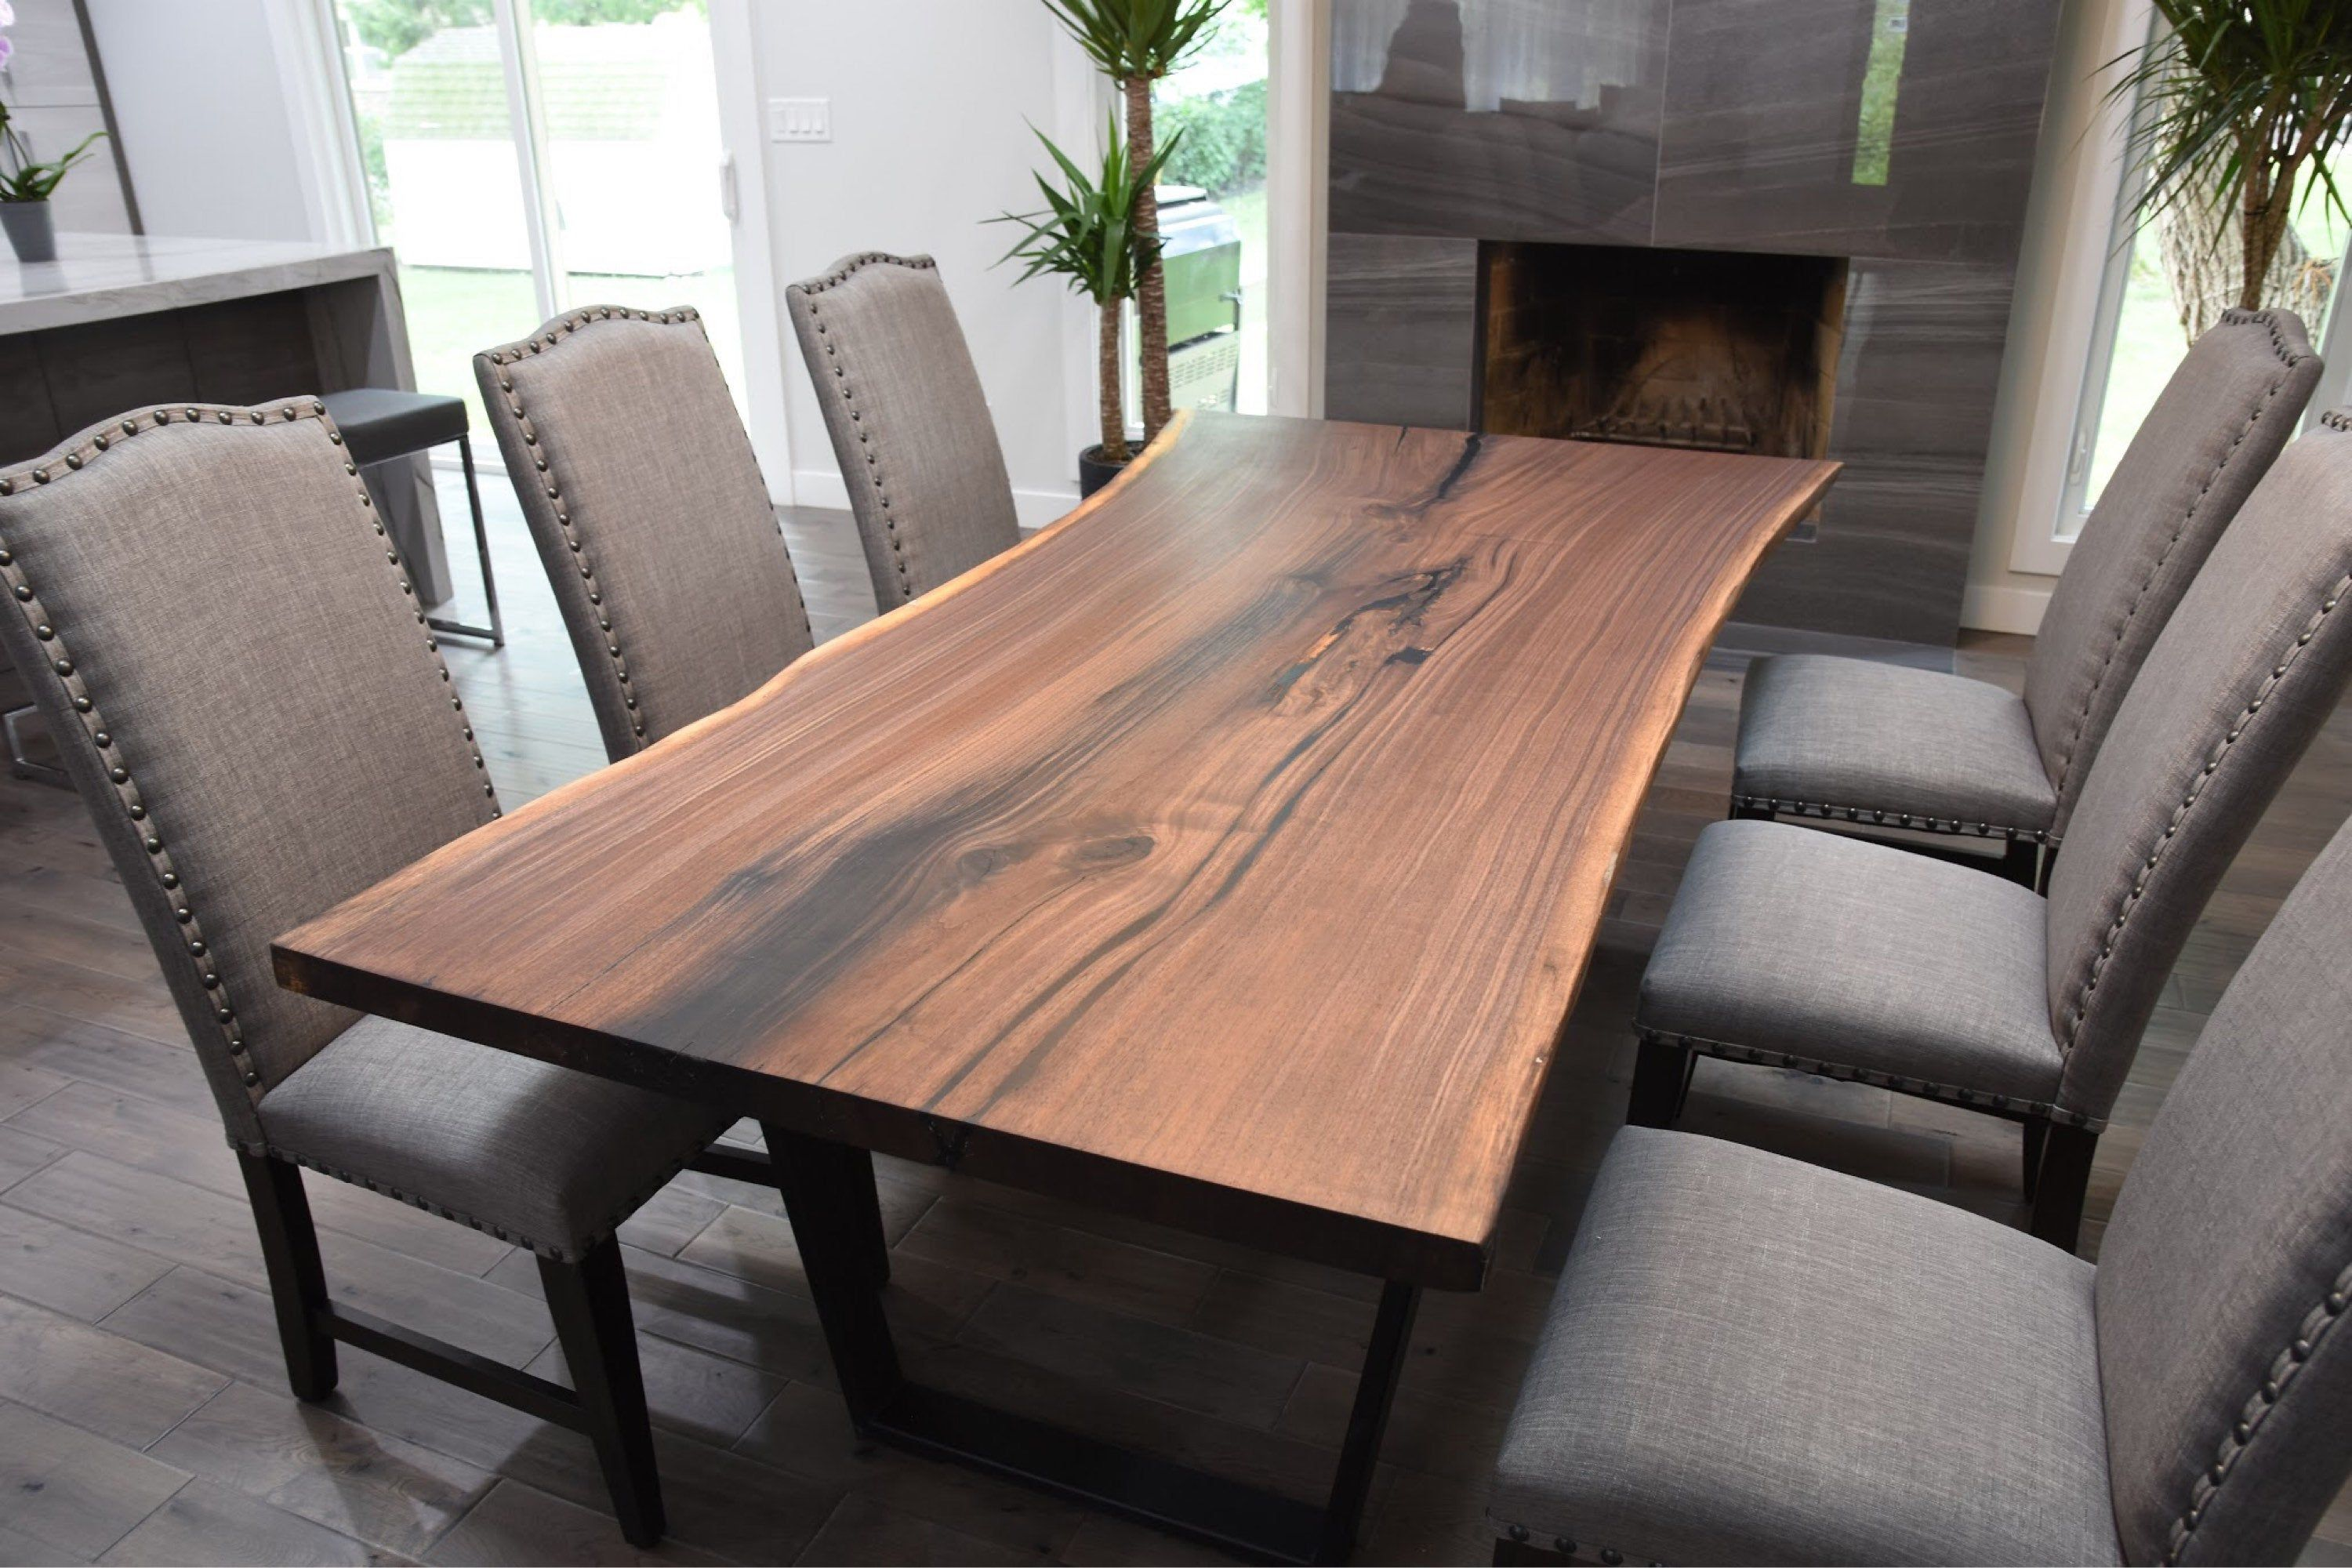 Single Slab Black Walnut Live Edge Dining Table Live Edge Dining Table Live Edge Dining Room Dining Table